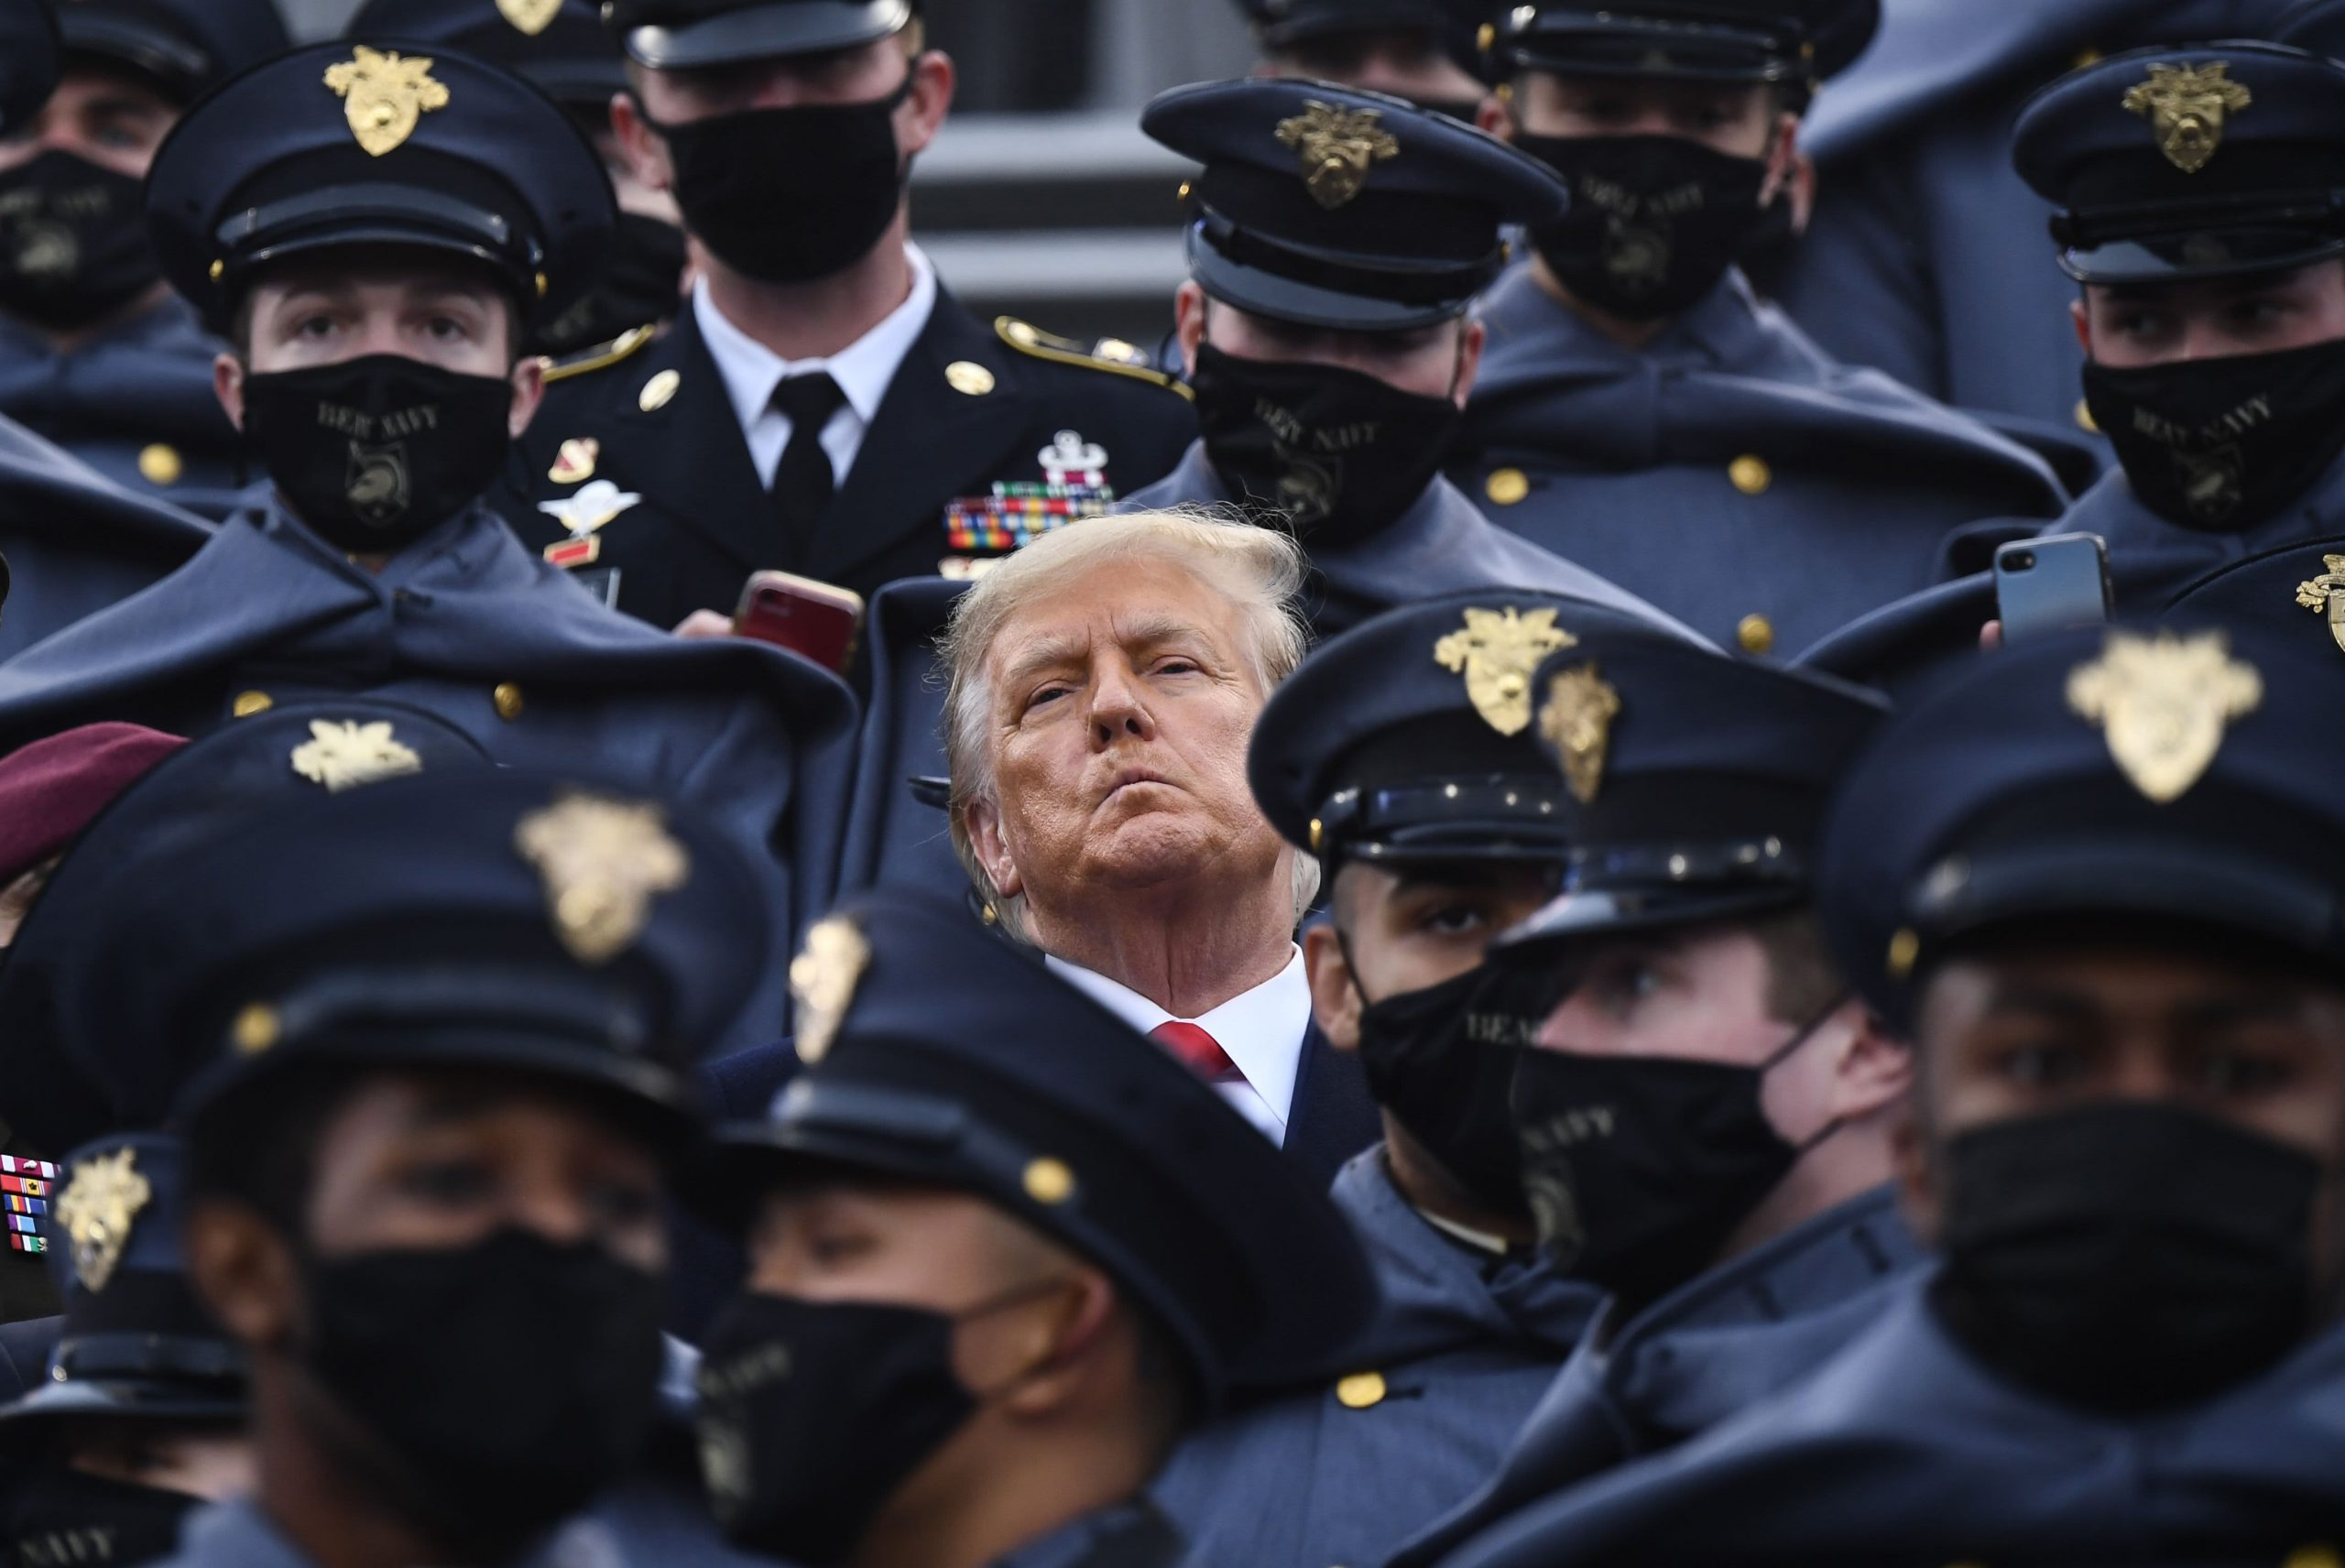 Trump does not wear the mask in a match between the Army and the Navy, despite concerns of Covid